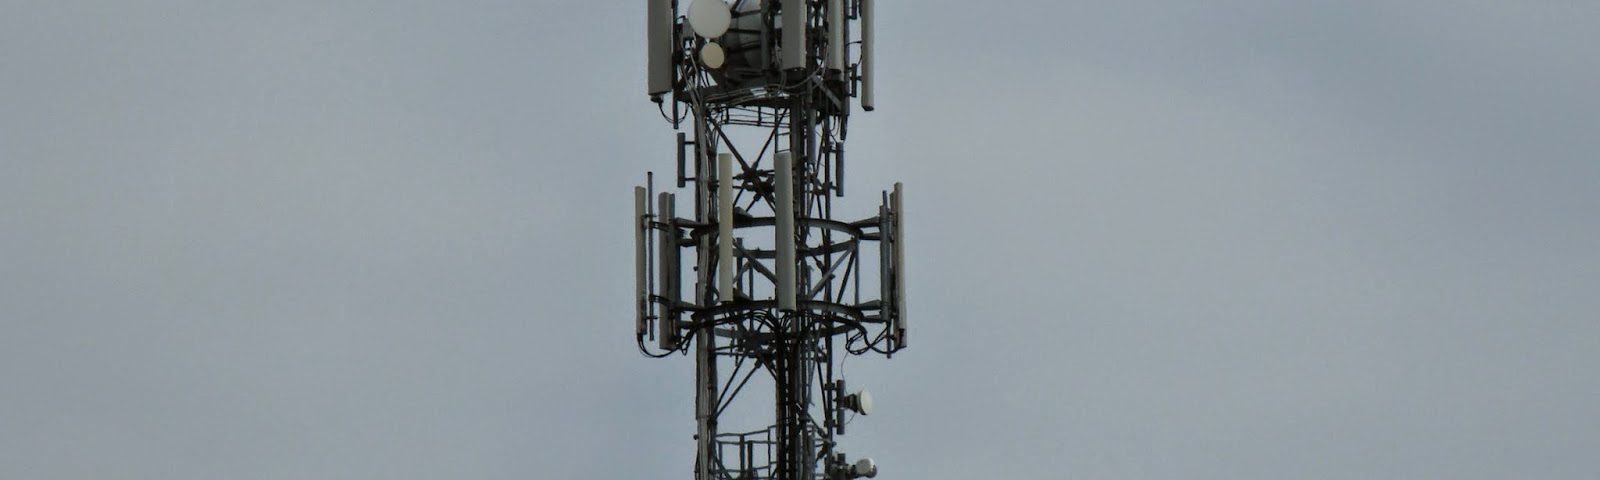 masts-are-best-new-age-technology